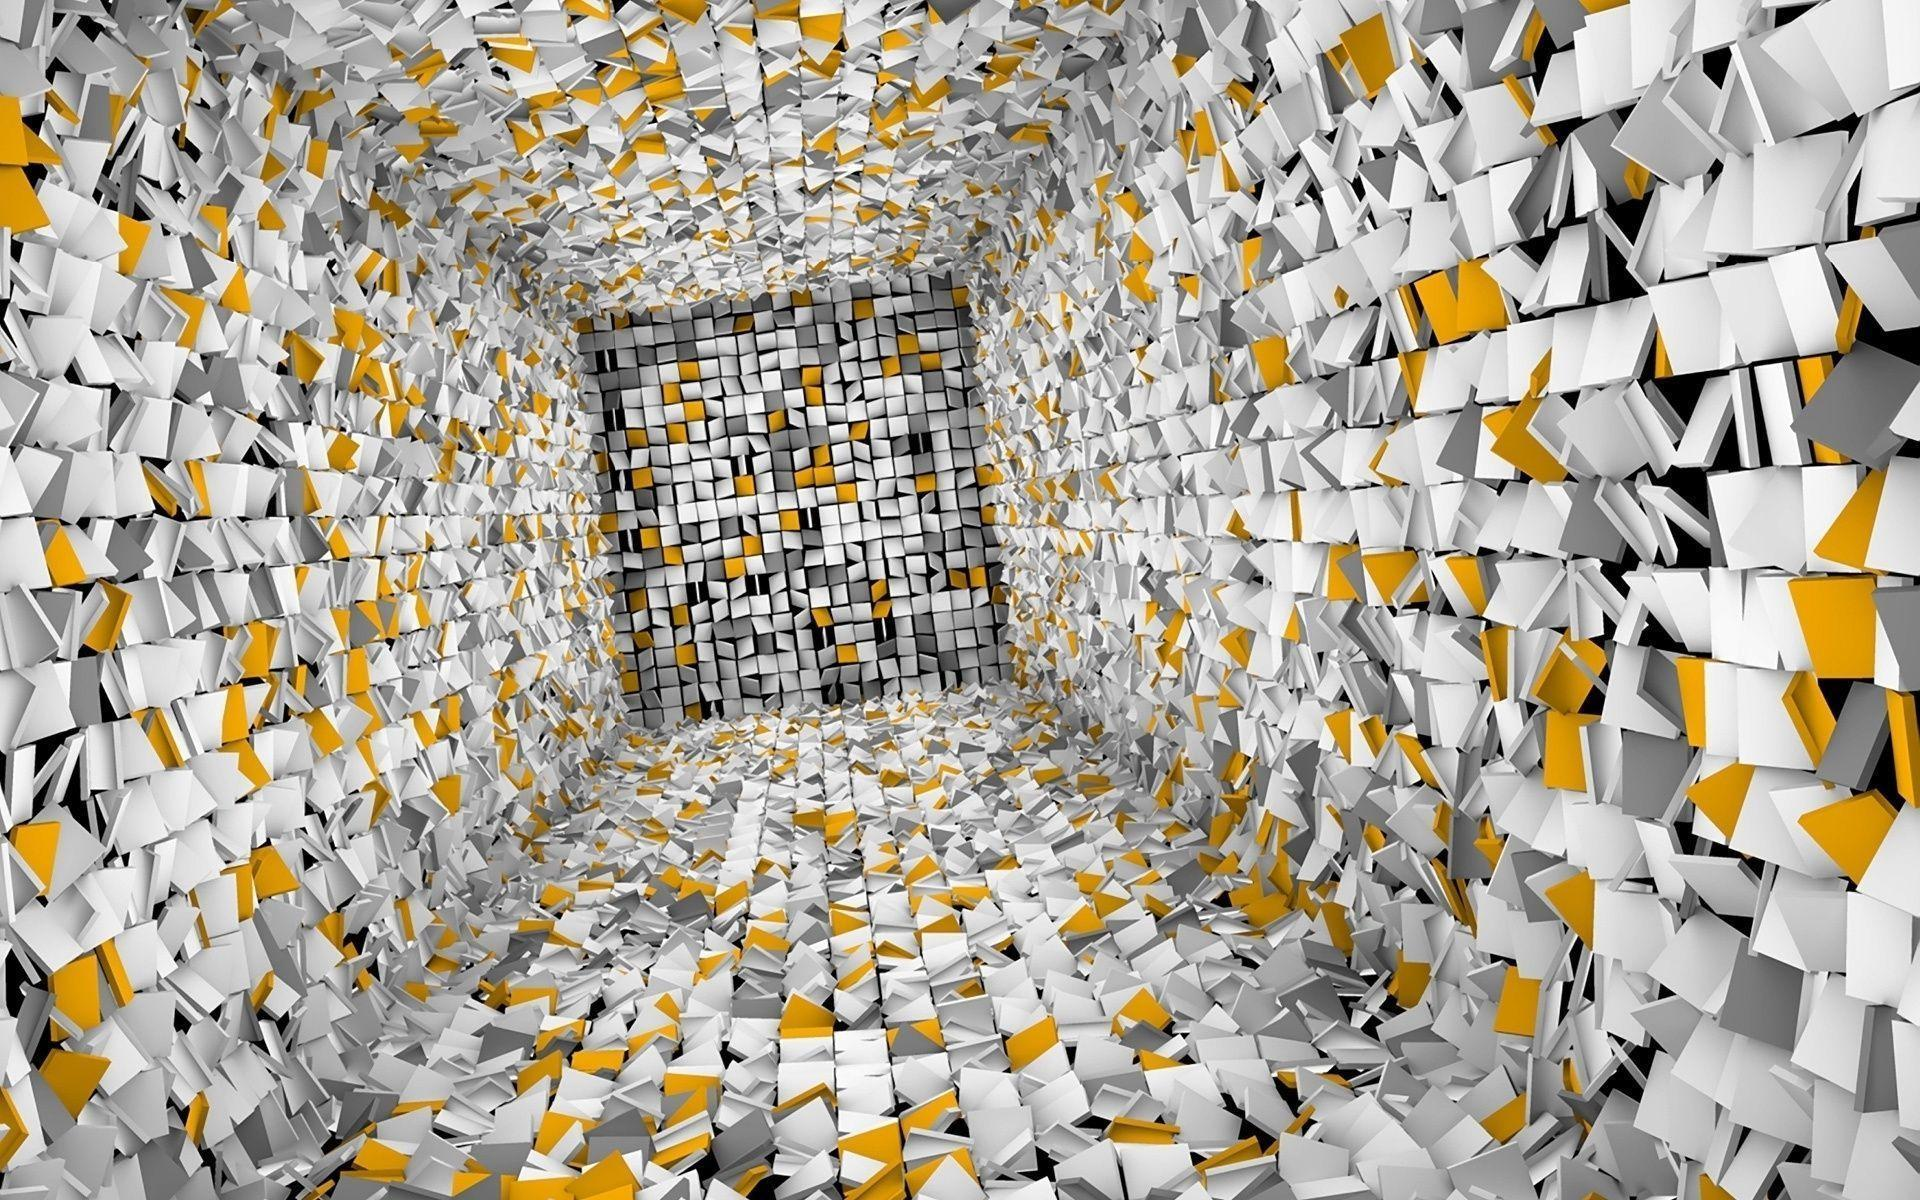 3D Cube Room Free Stock Photo and Wallpapers